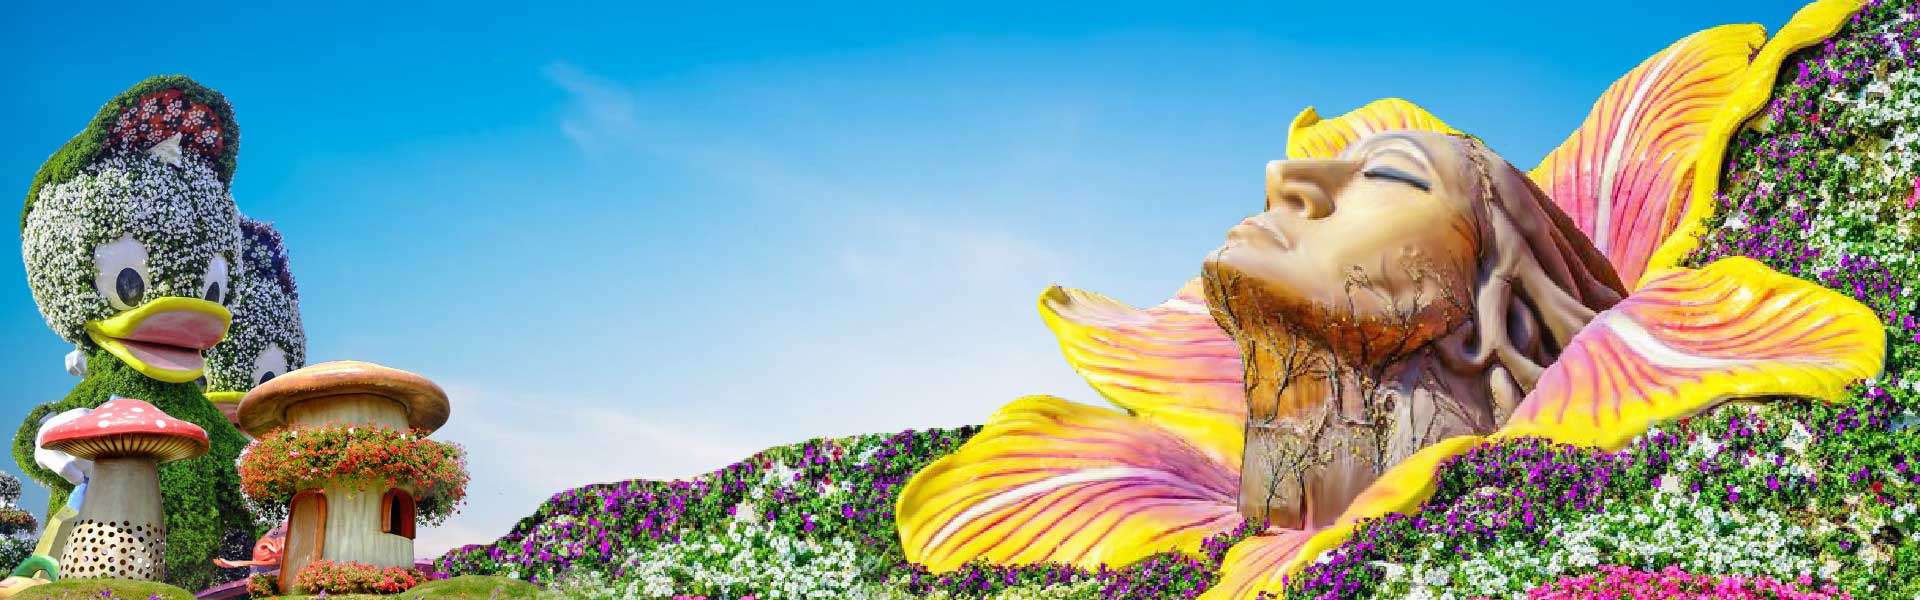 Banner image of a beautiful view of flowers and plants given a shape of human and animal